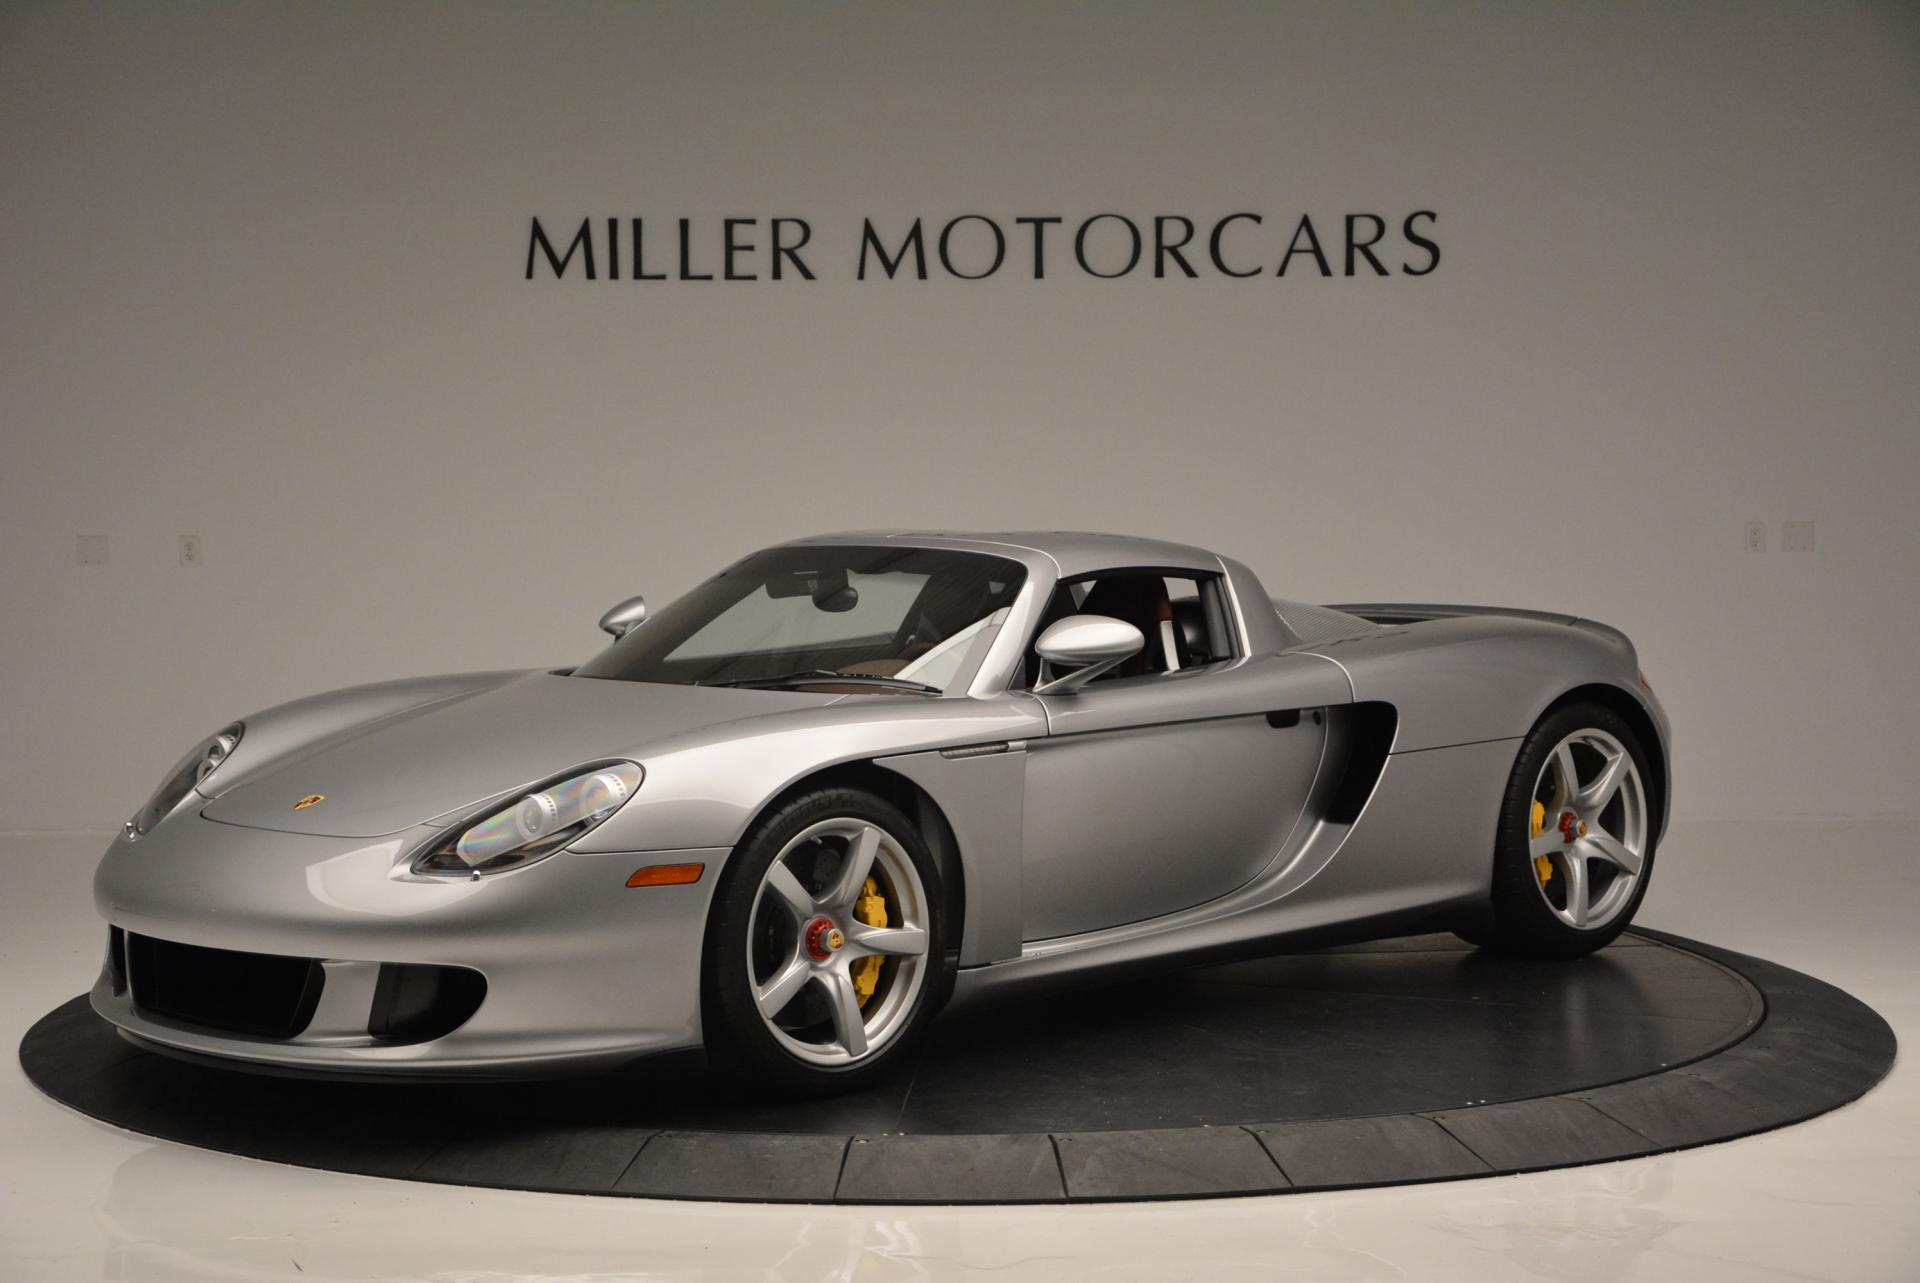 Used 2005 Porsche Carrera GT for sale Sold at Bentley Greenwich in Greenwich CT 06830 1